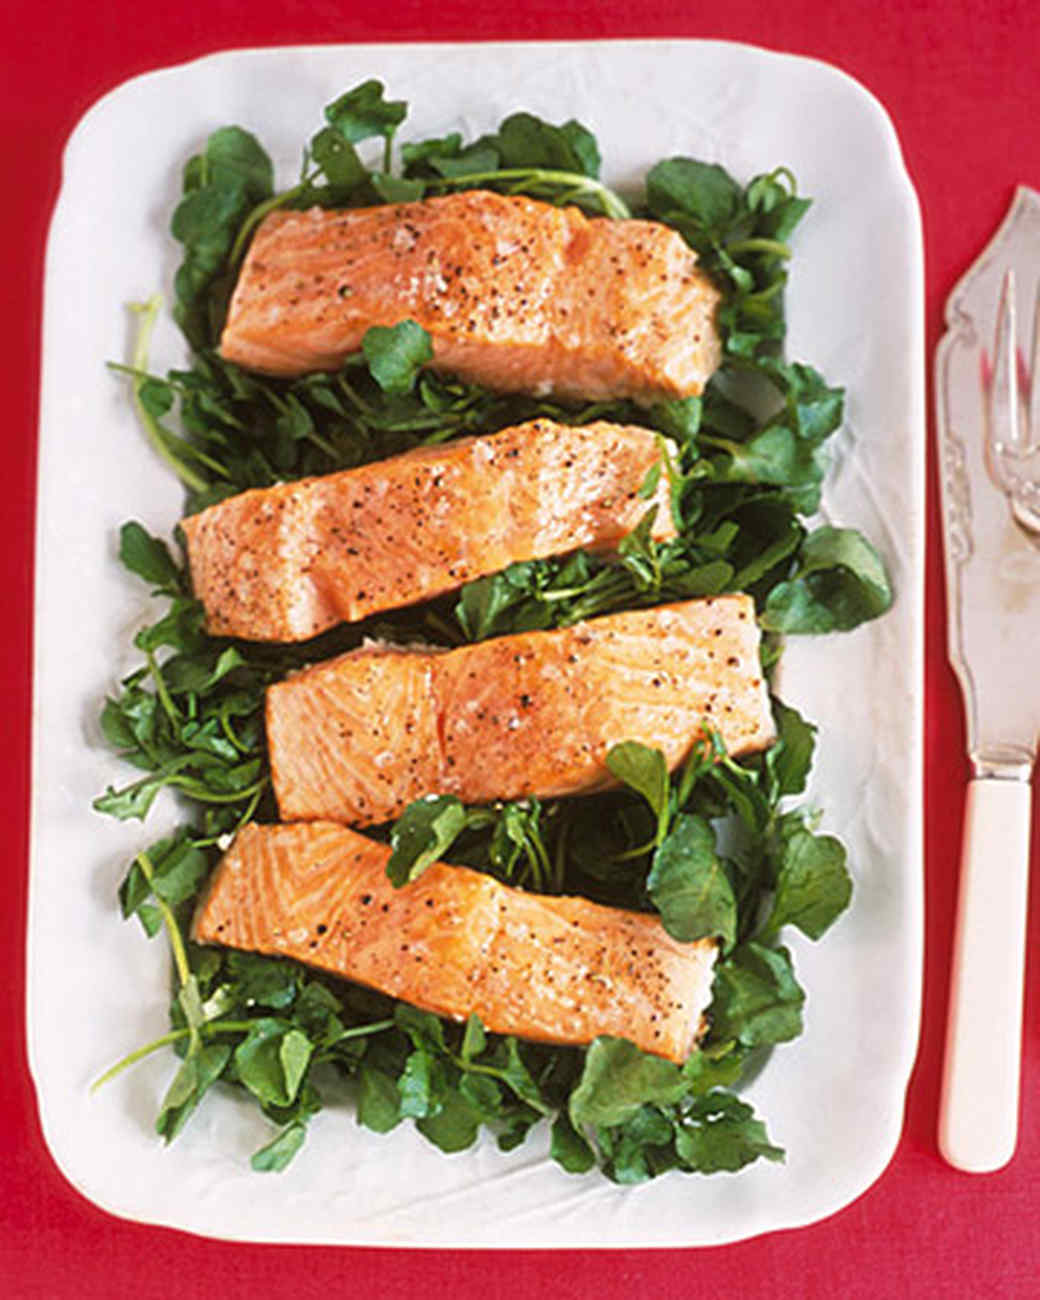 Barbecued Salmon Fillets